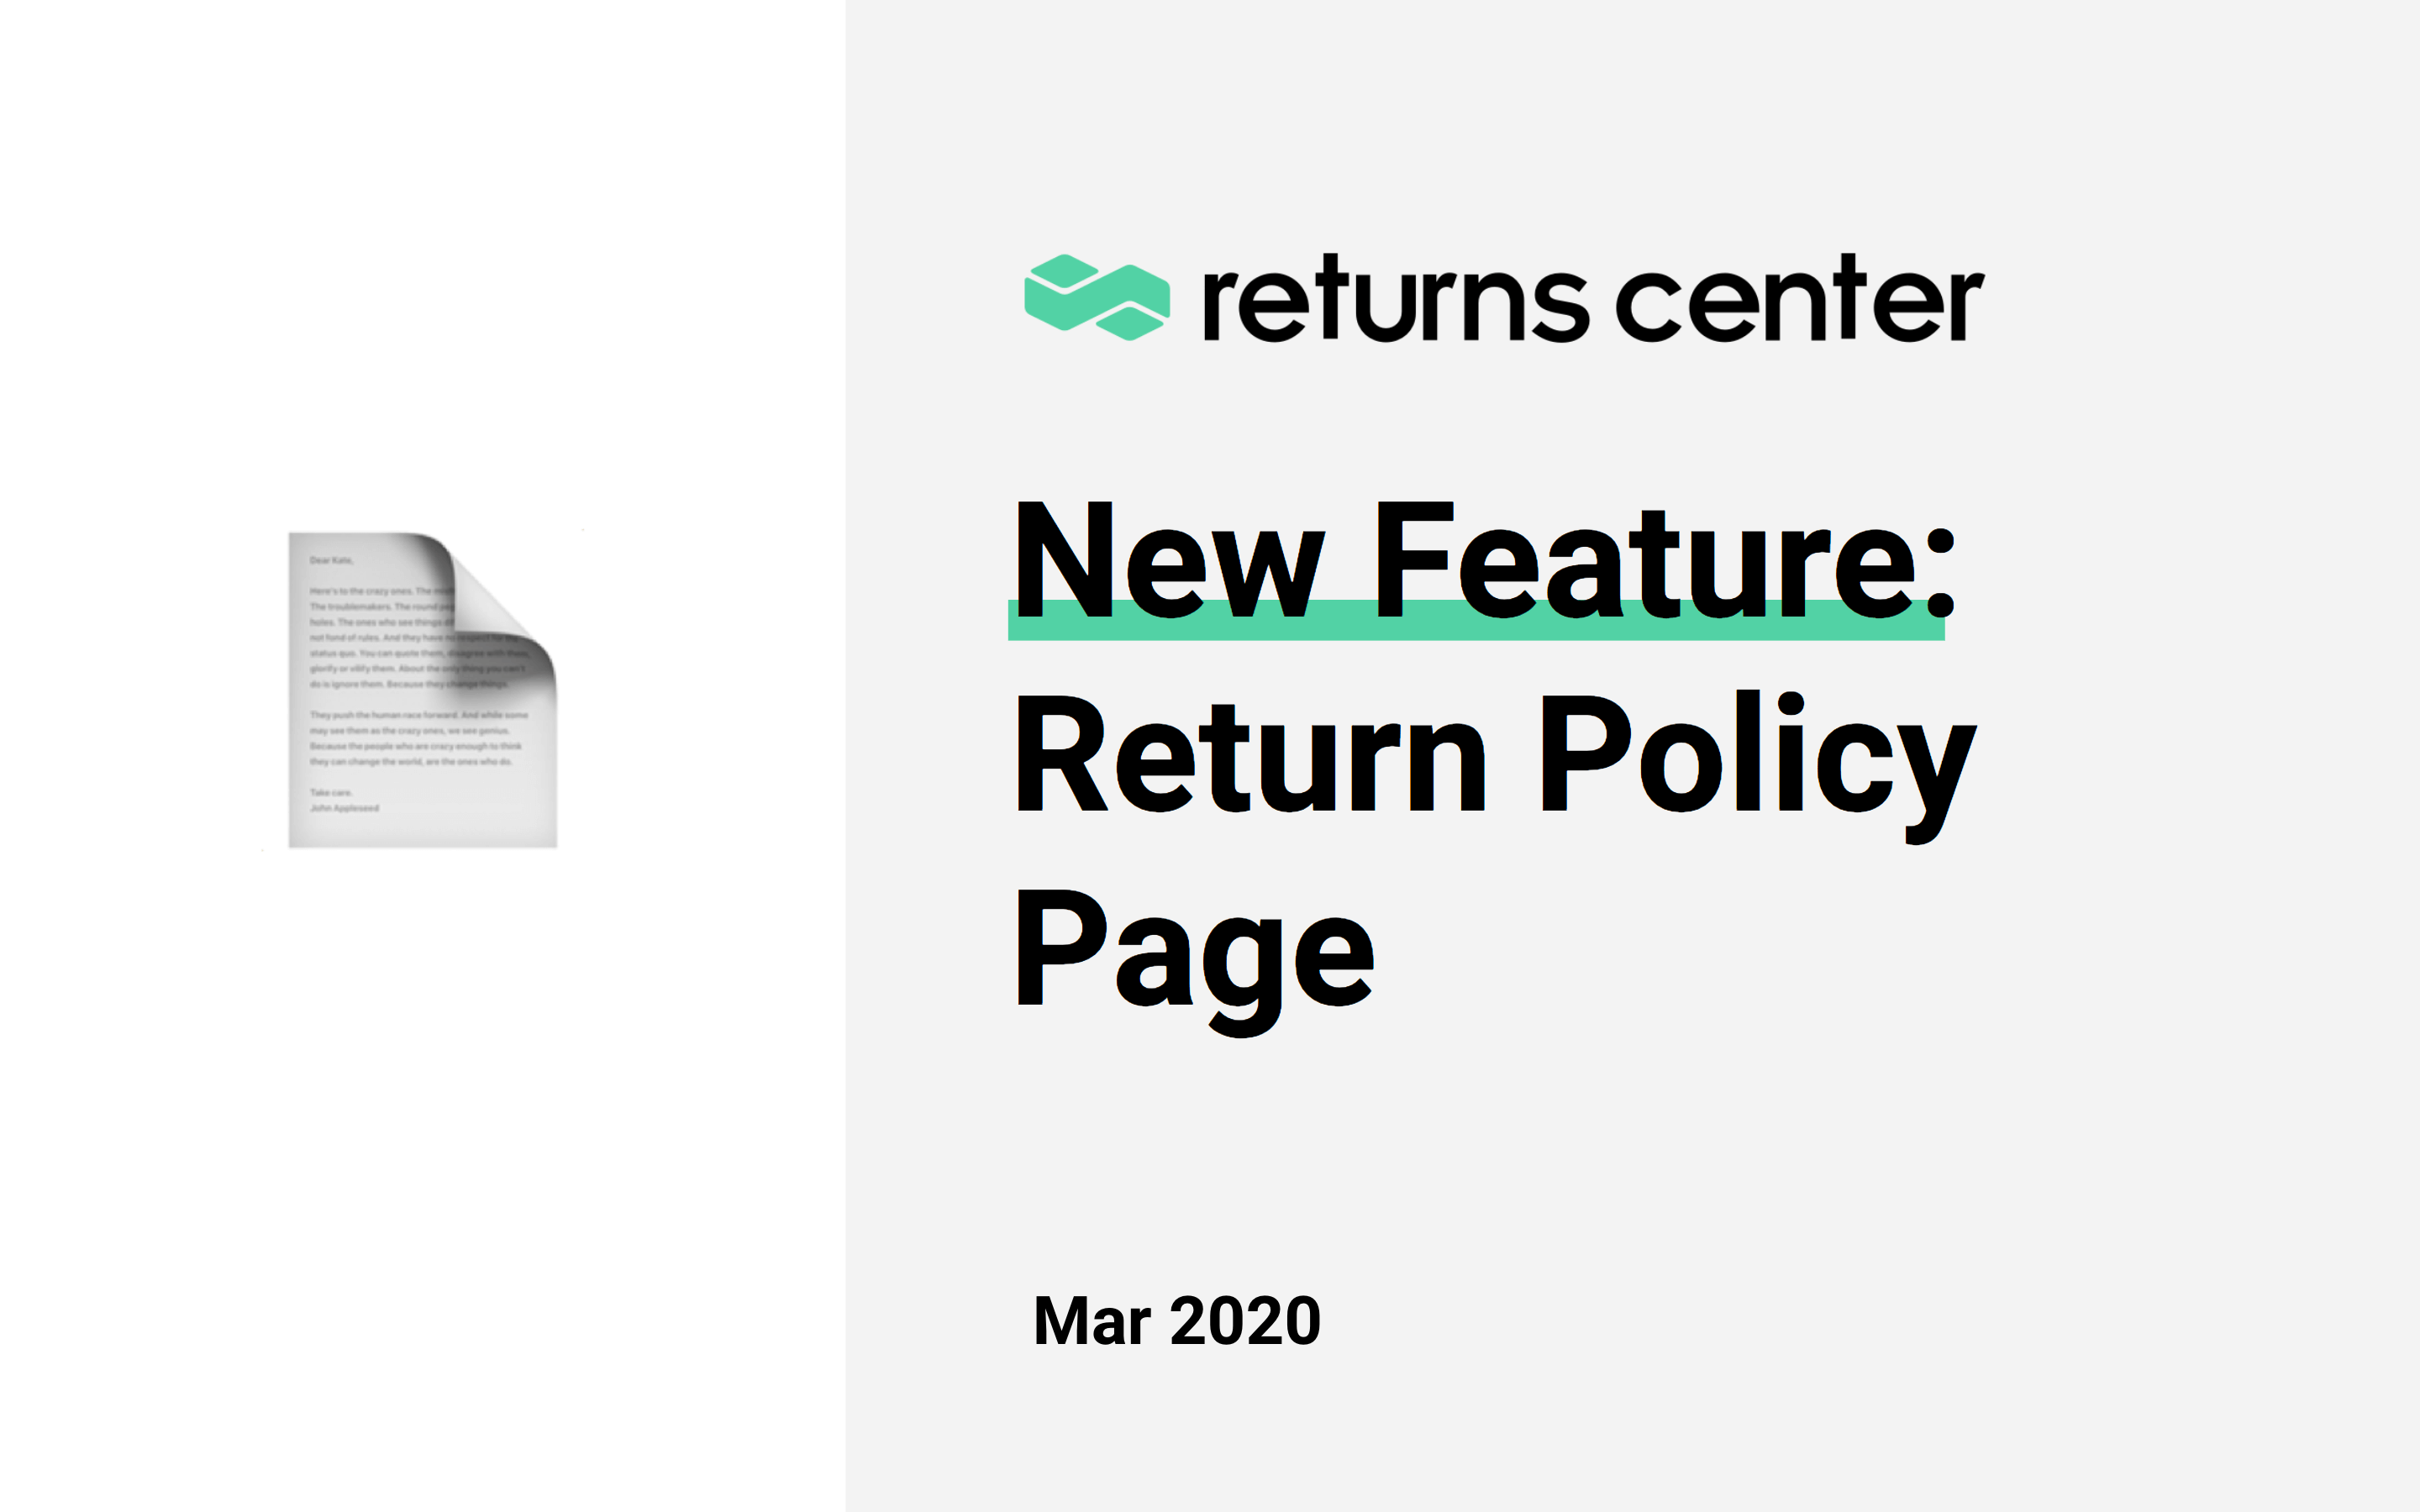 New Feature: Return Policy Page